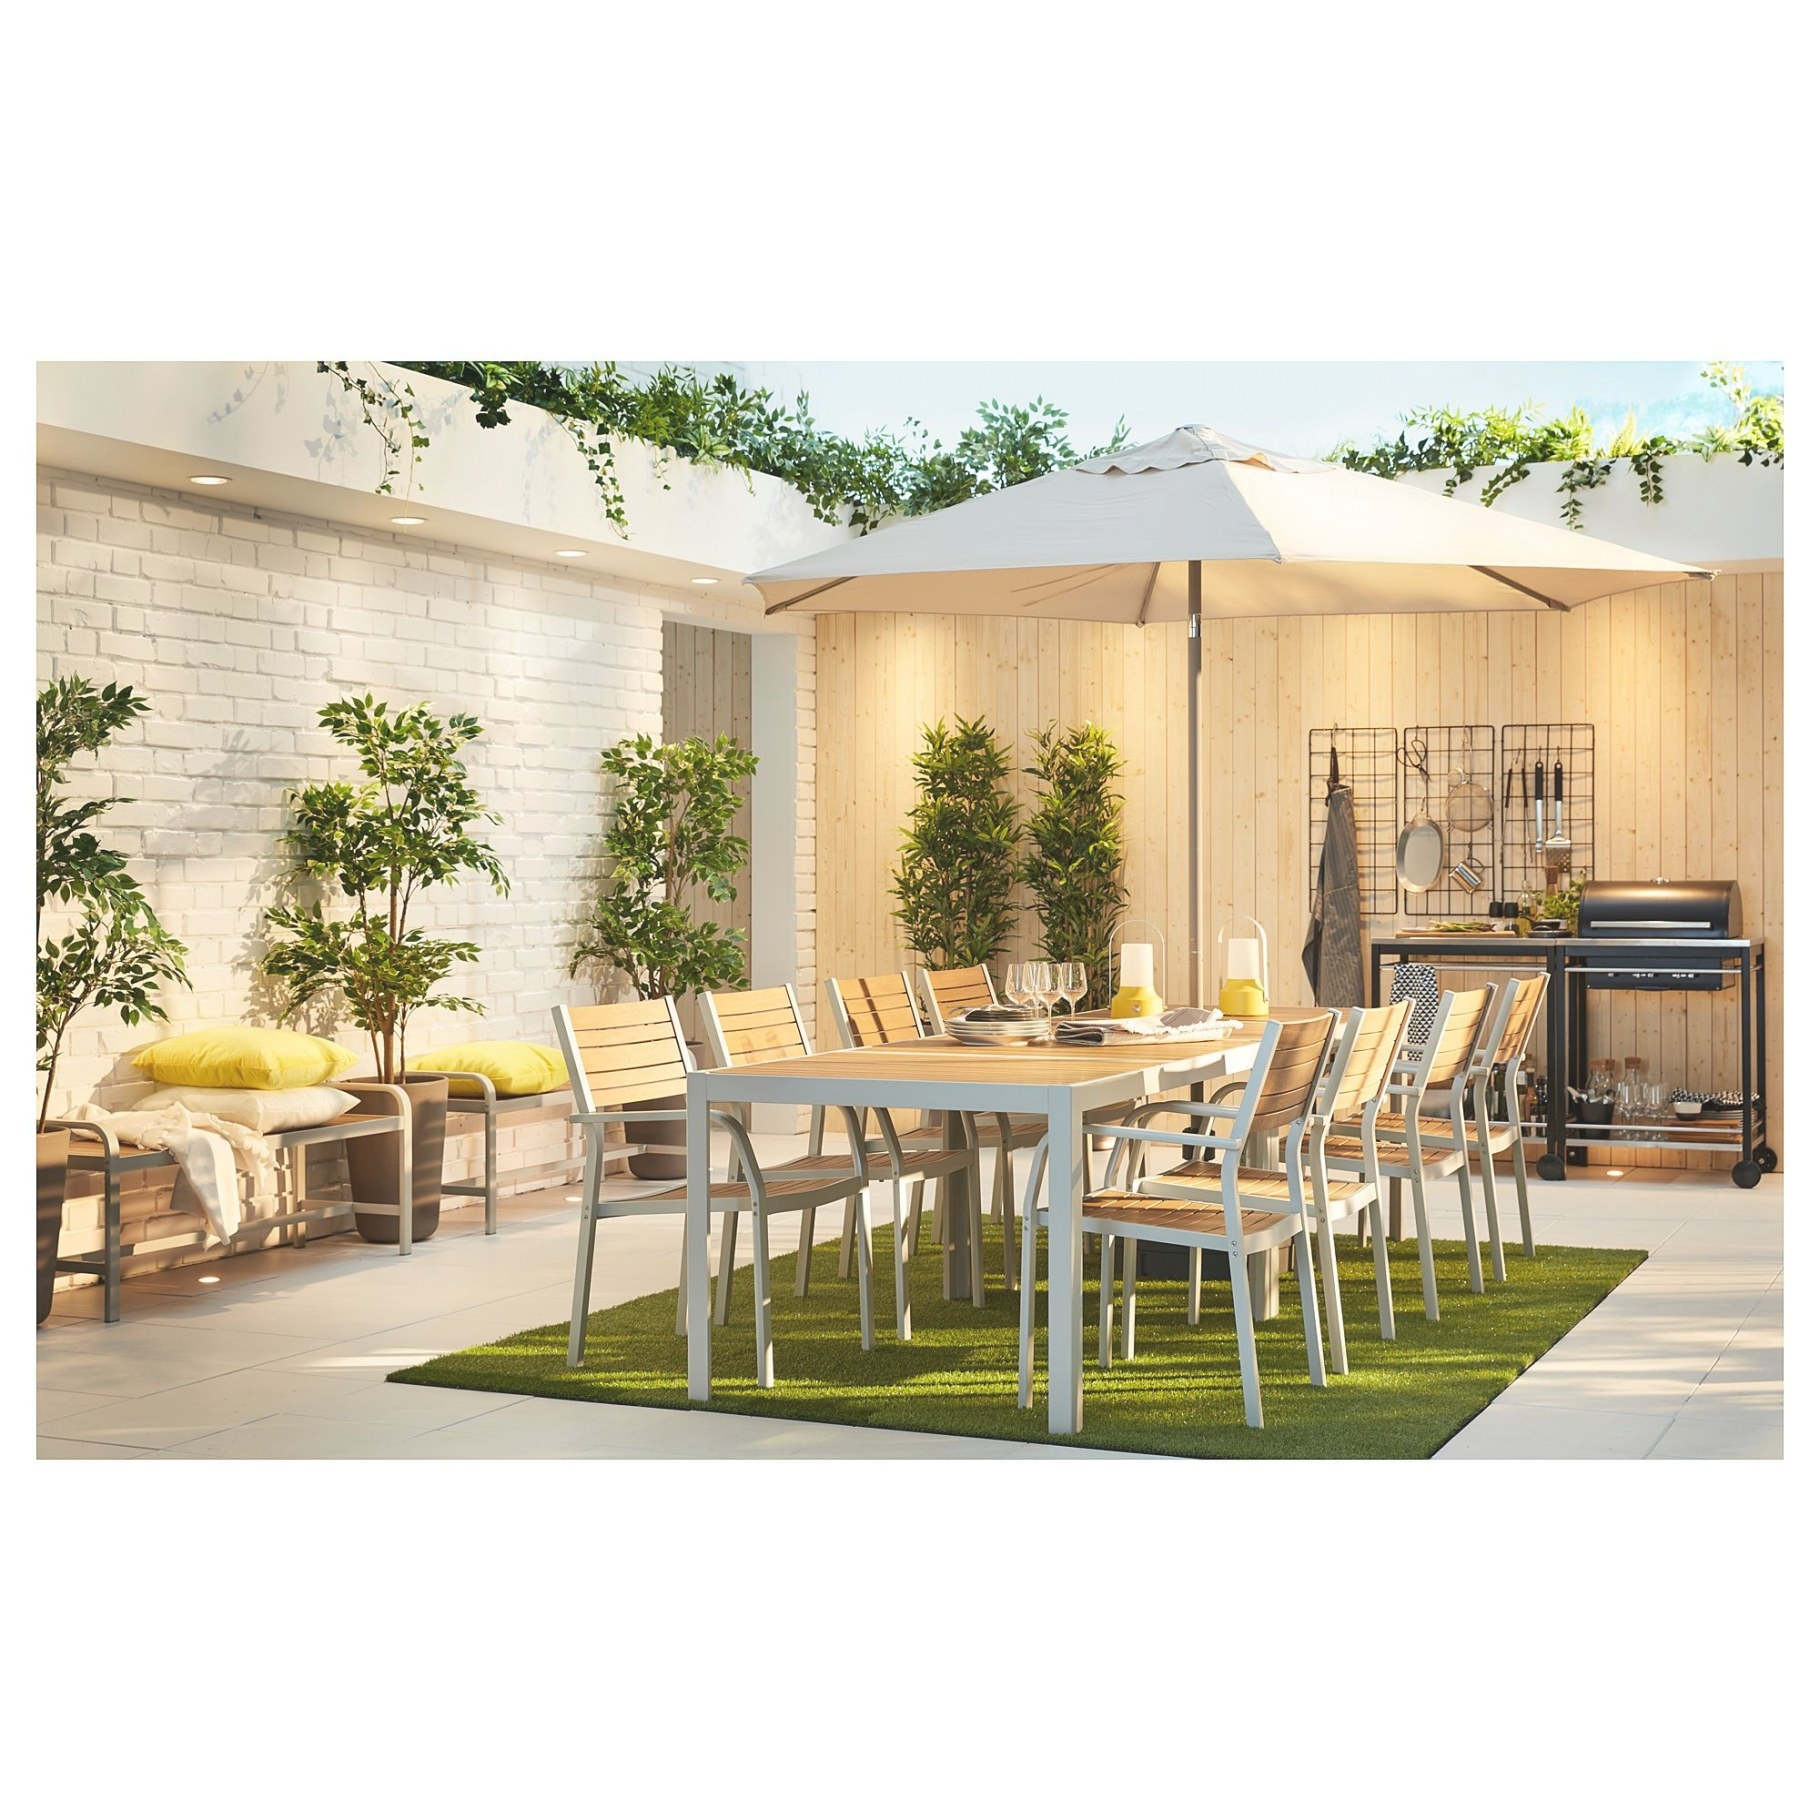 Ikea - Själland Table And 4 Chairs, Outdoor Light Brown inside Ikea Kitchen Sale 2019